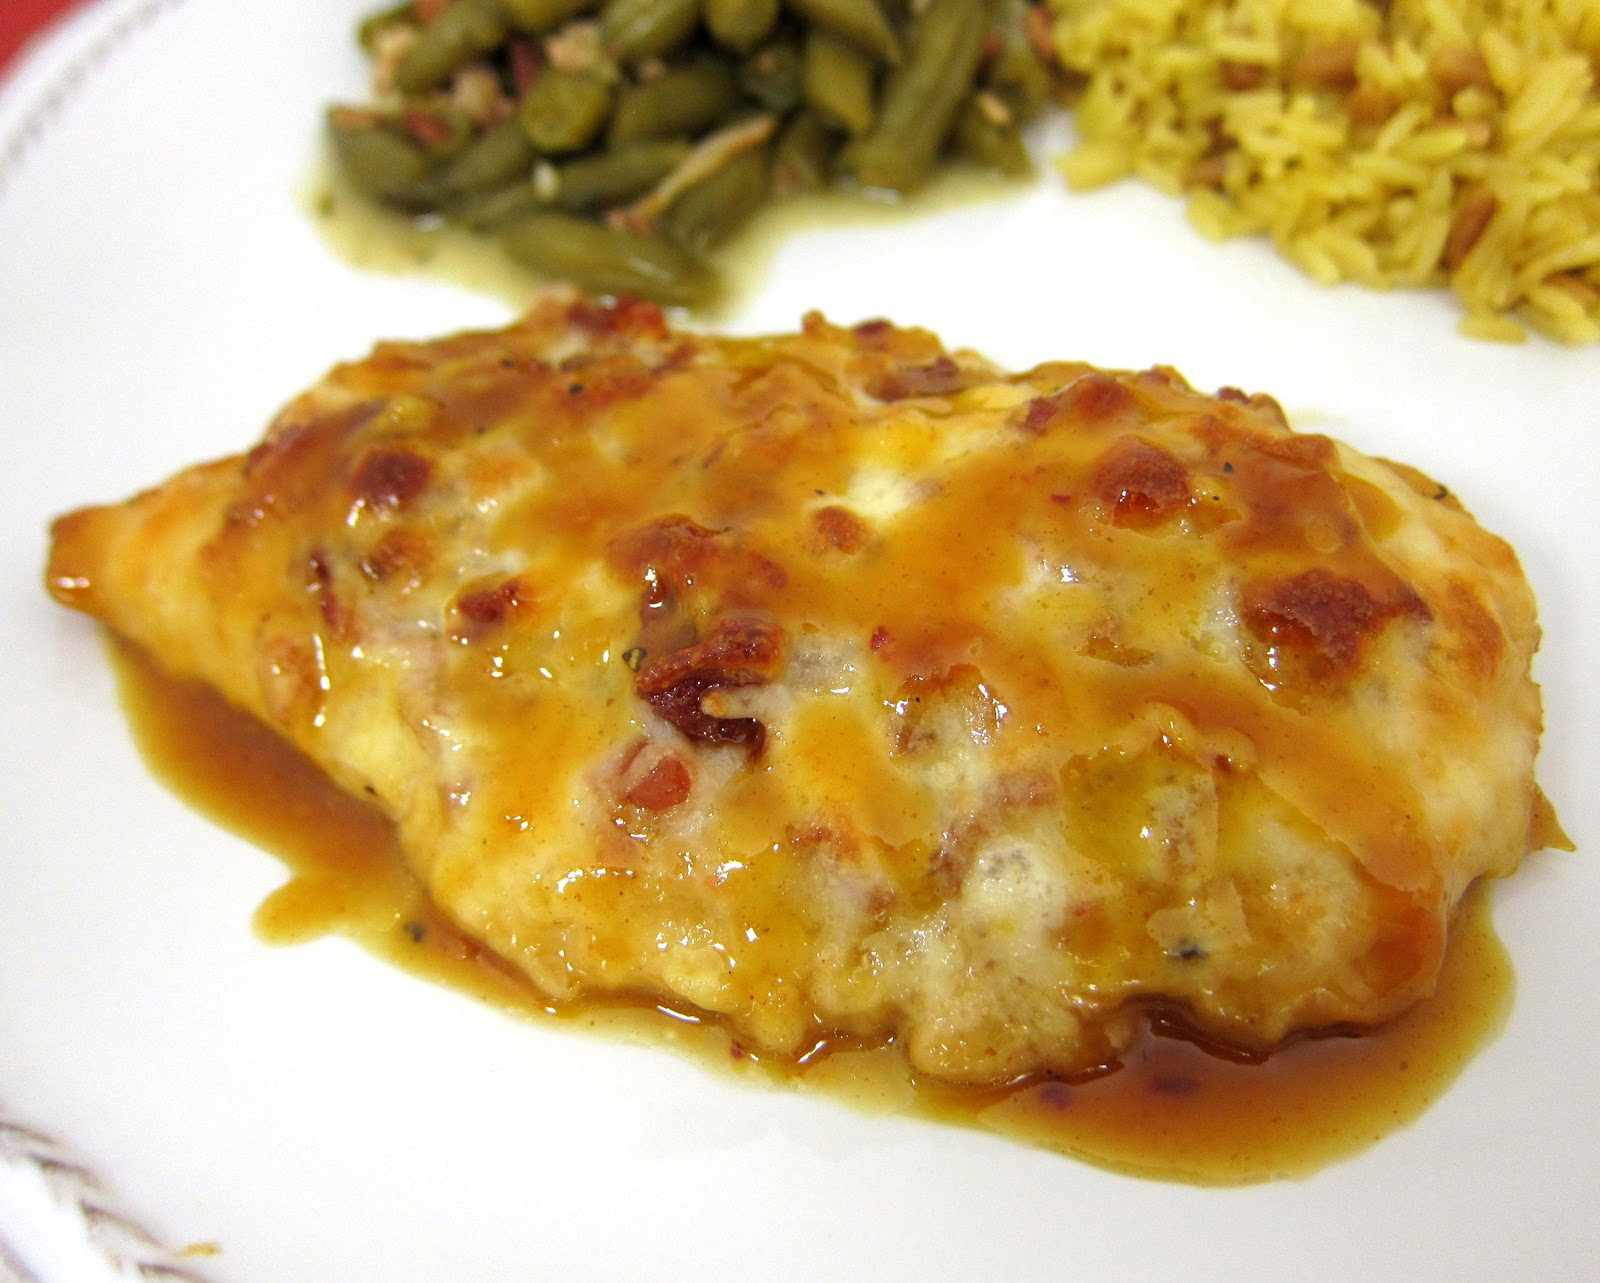 Honey Mustard Chicken - TO DIE FOR!!! Chicken topped with honey